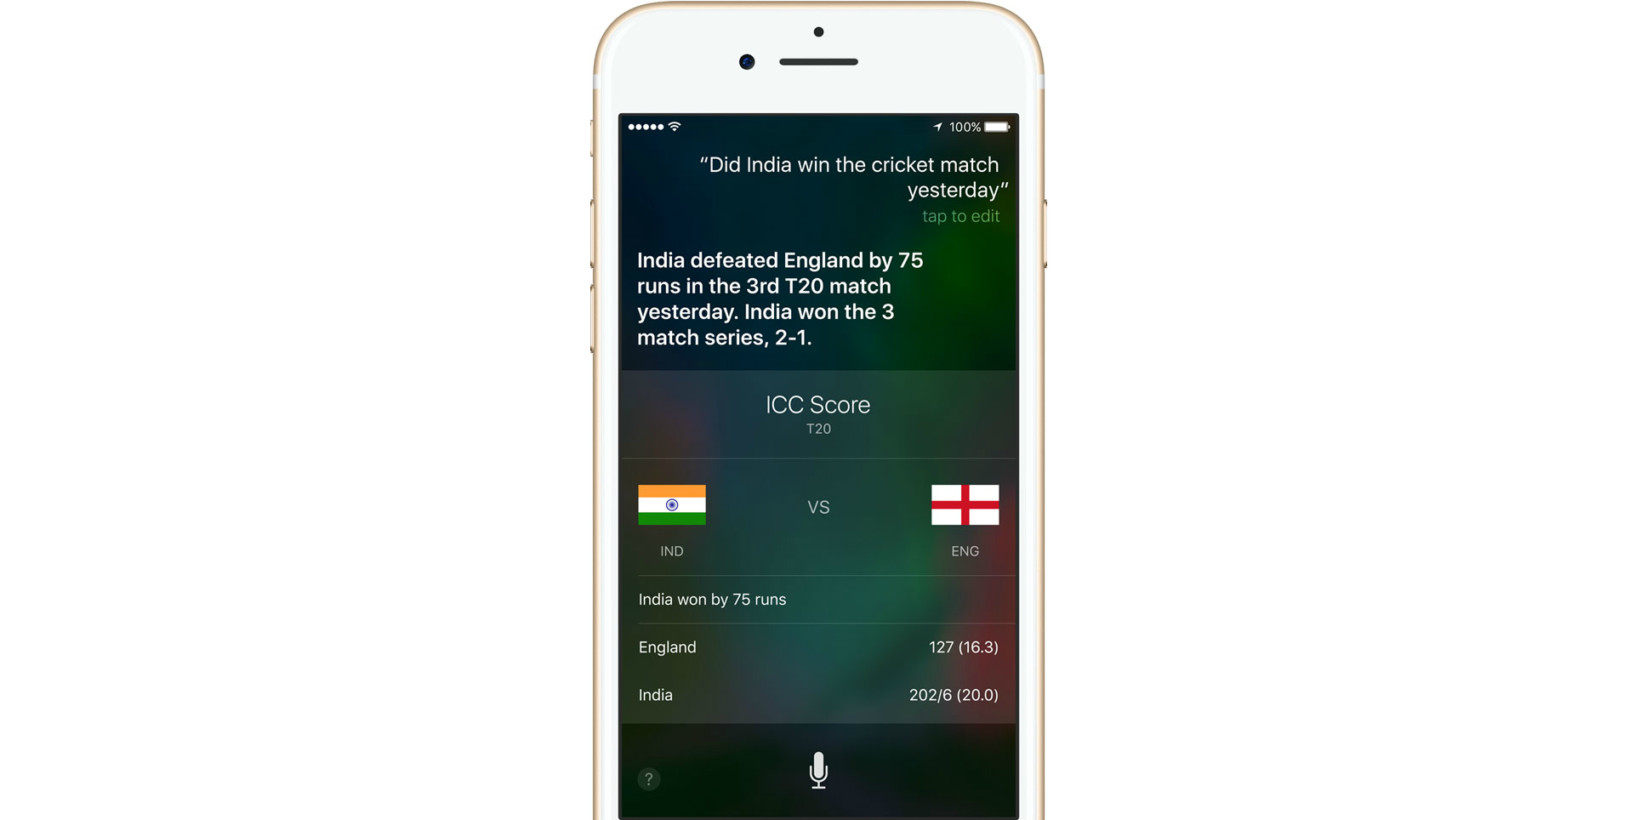 Apple fixes Siri's robotic voice with deep learning - hear the difference